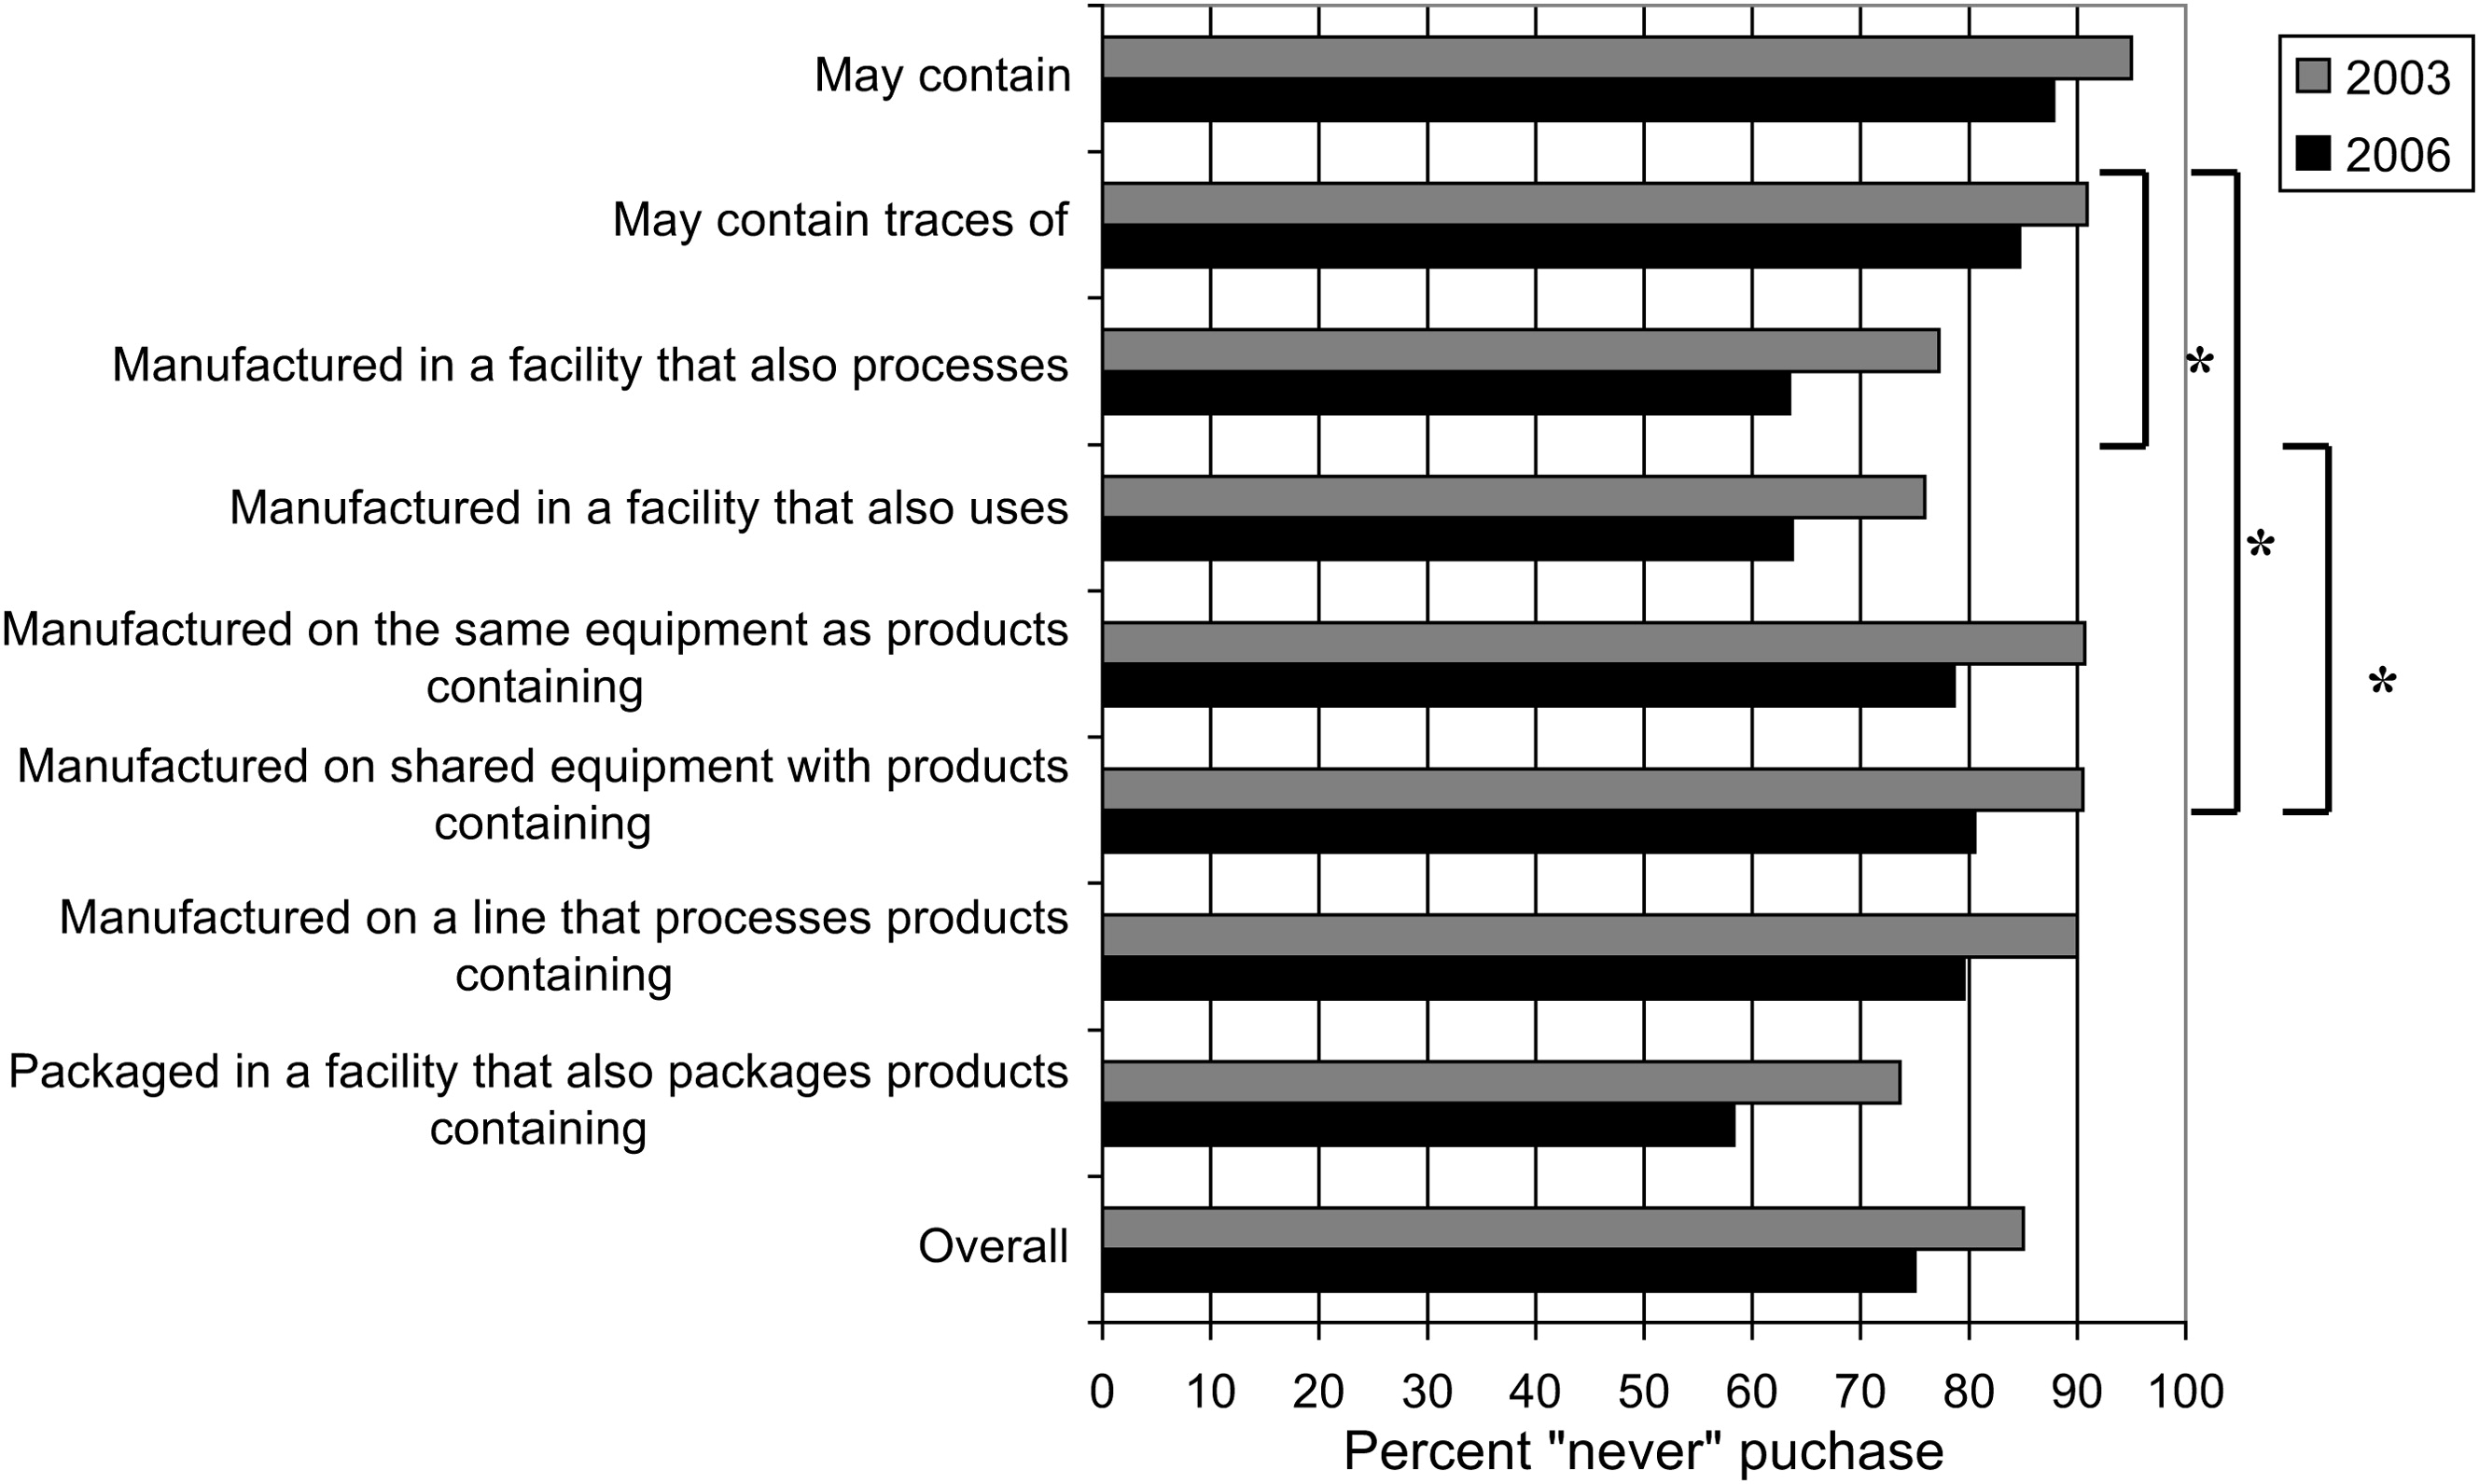 Consumer attitudes and risks associated with packaged